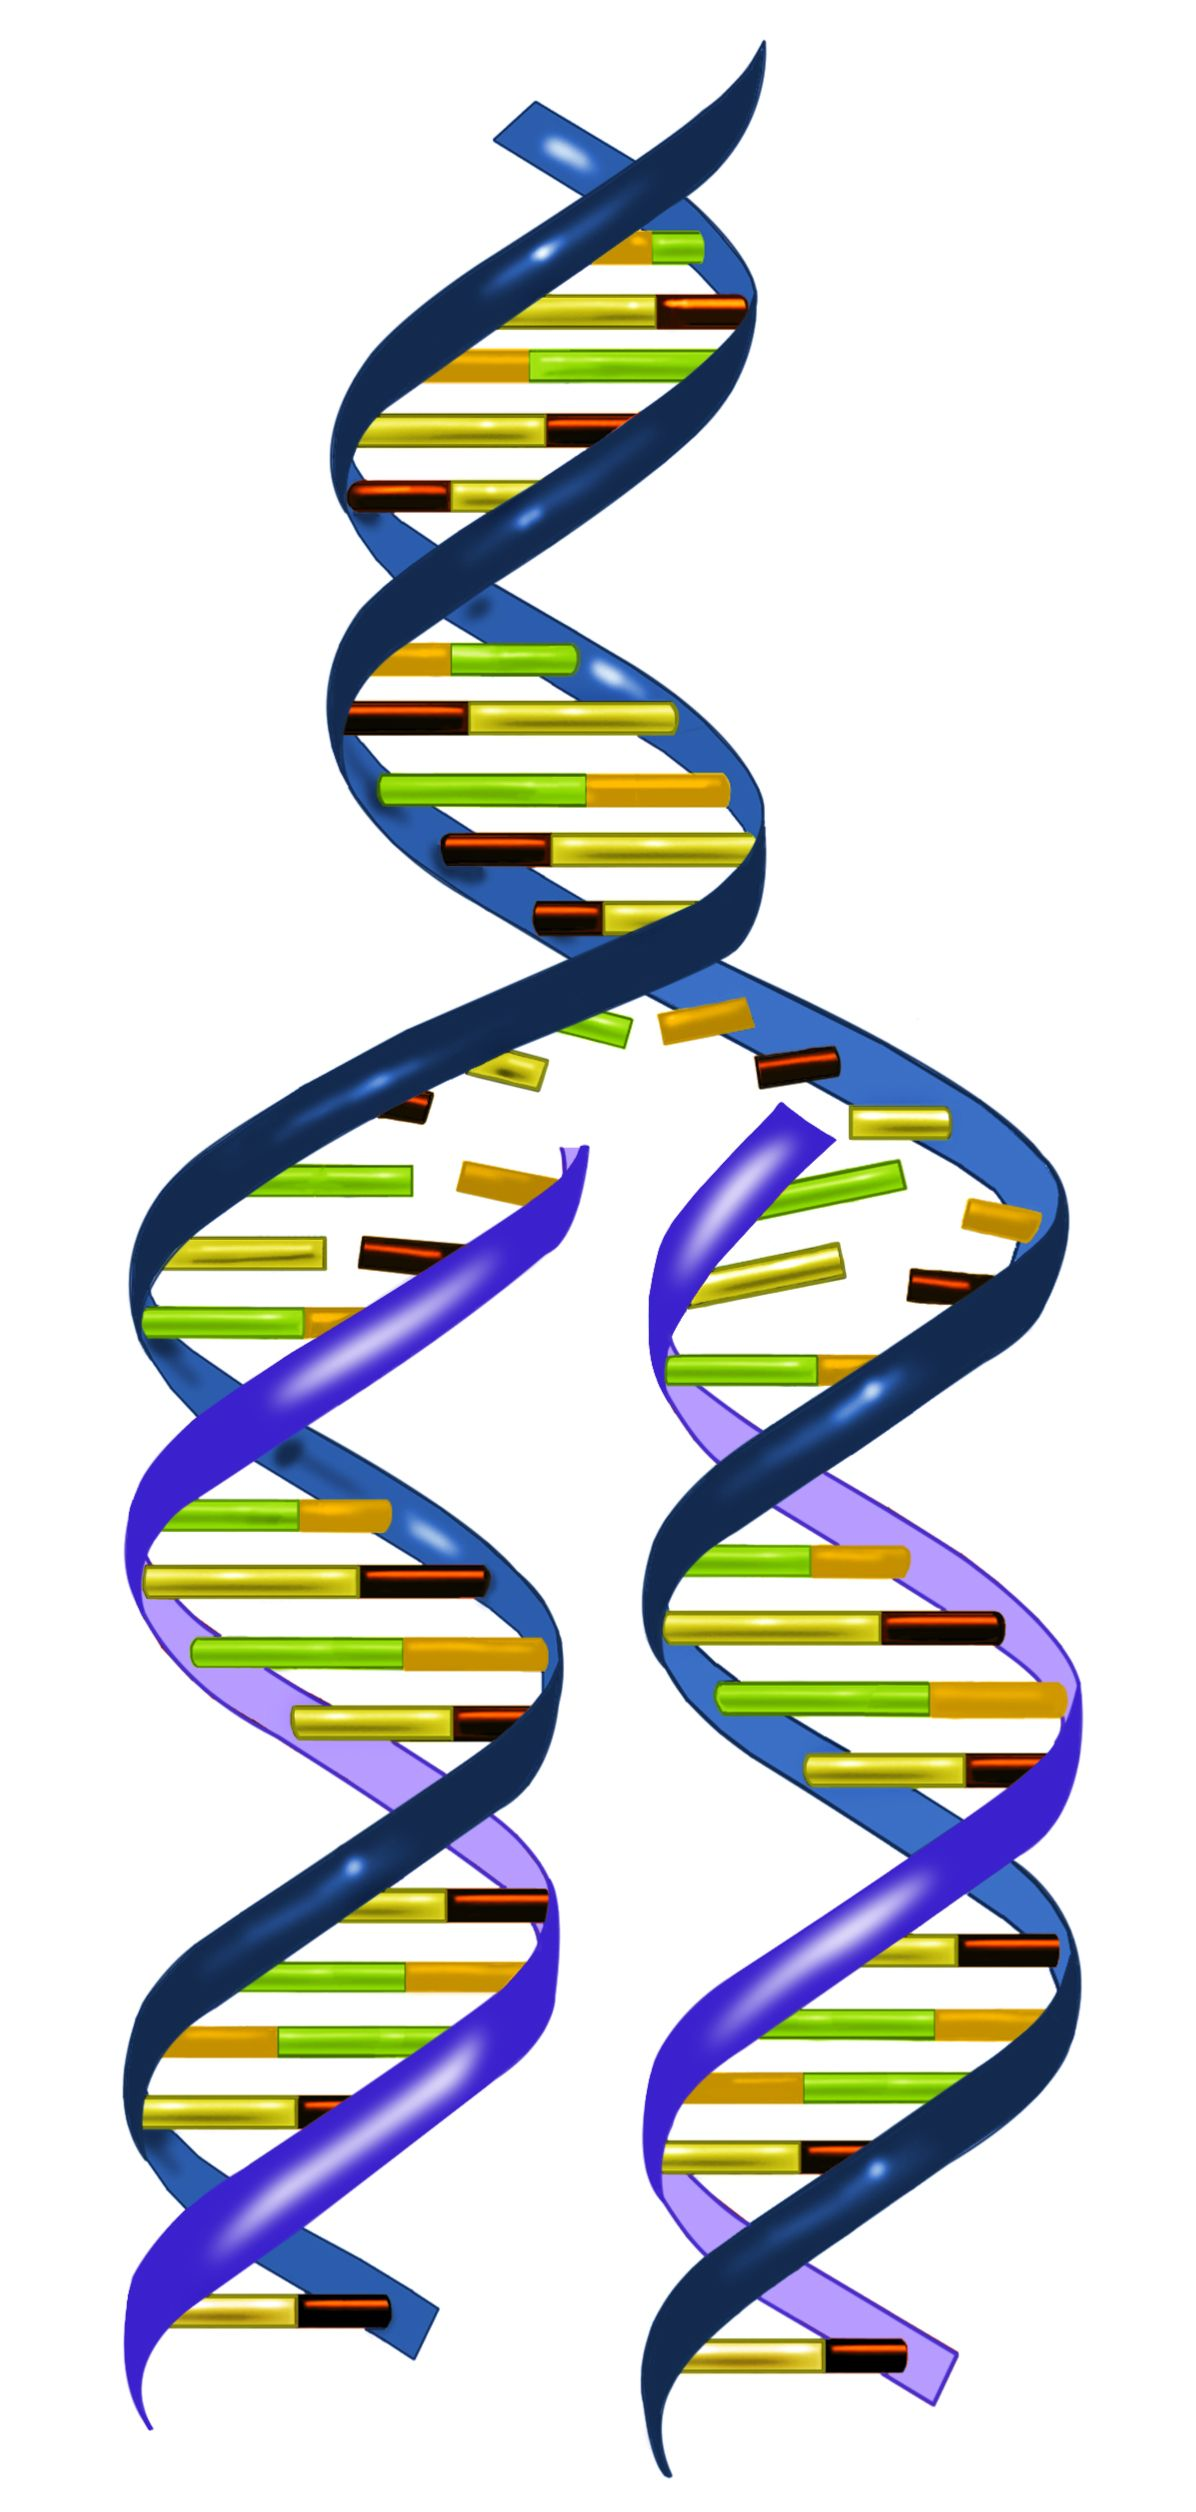 Basic Rules Of Dna Replication Dna Replication Dna Facts Dna